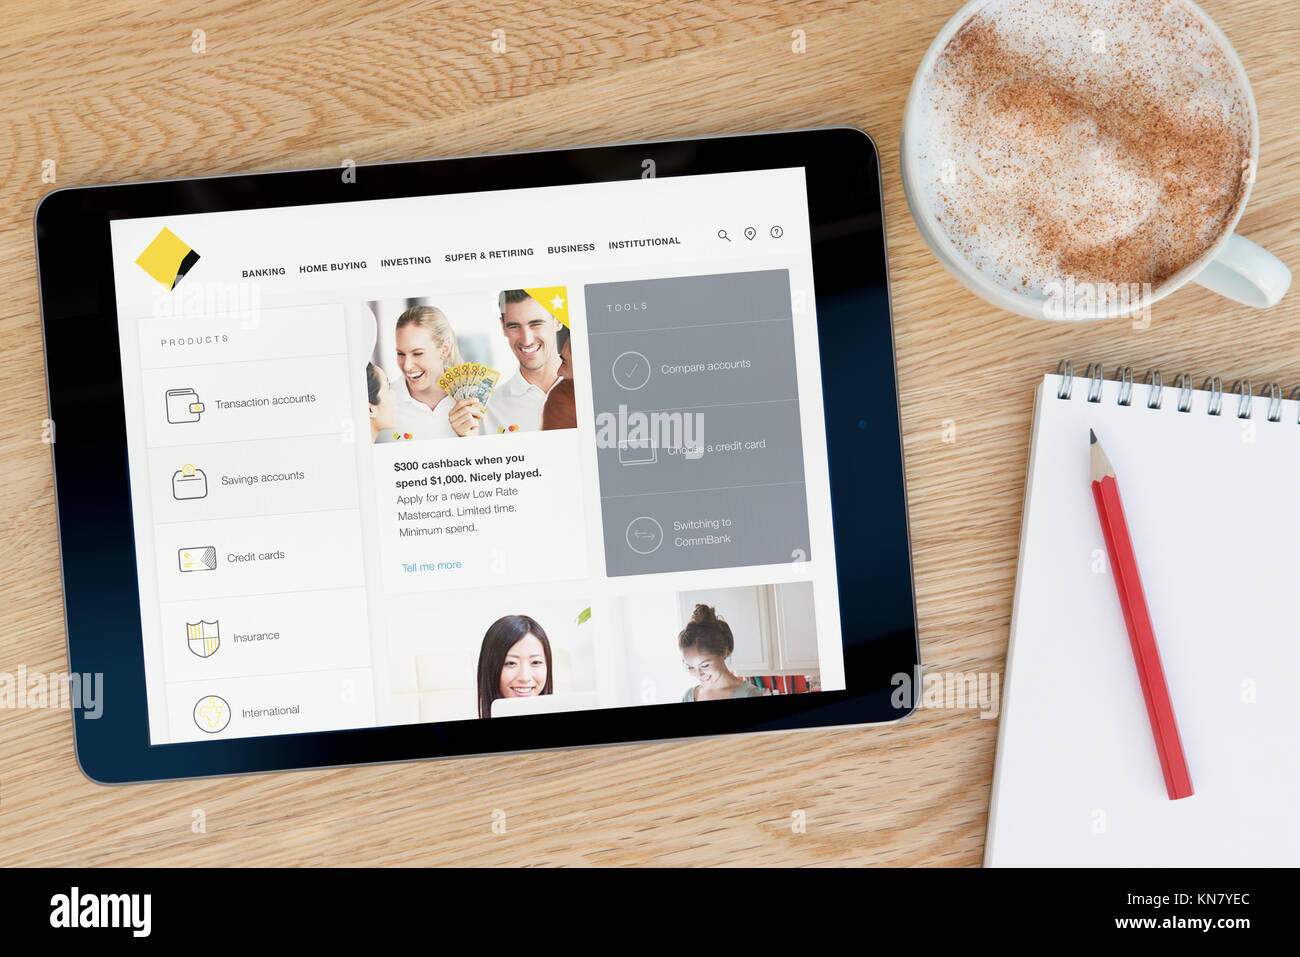 The Commonwealth Bank website on an iPad tablet device which rests on a wooden table beside a notepad and pencil - Stock Image